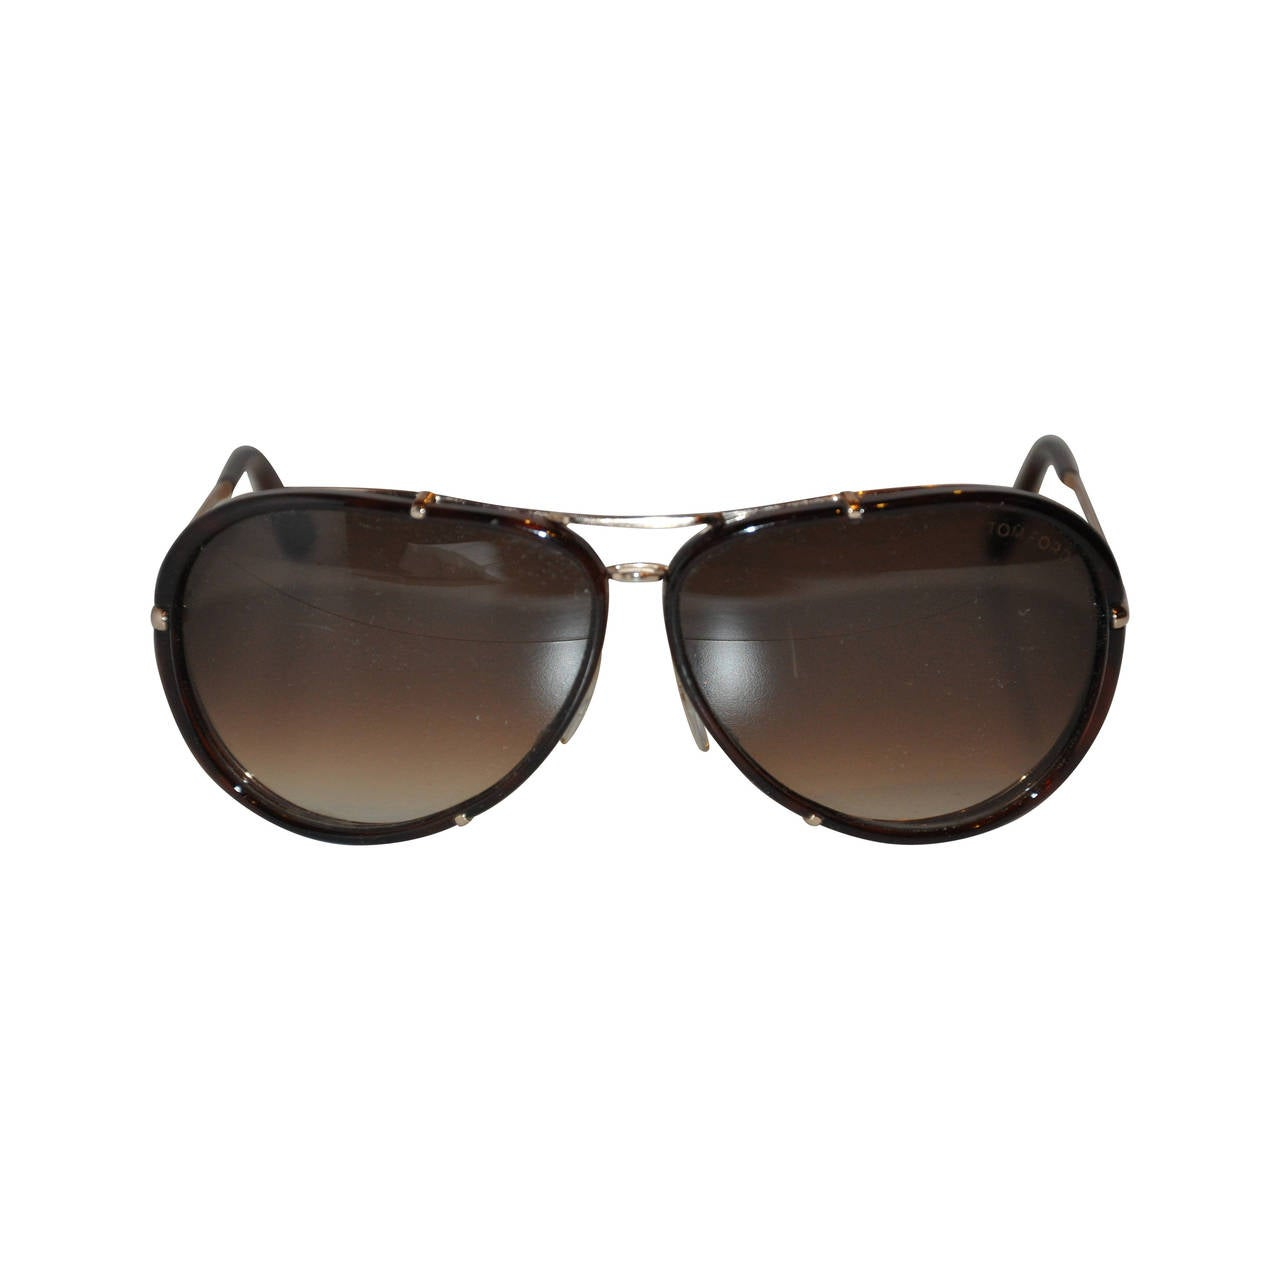 Tom Ford Brown Lucite with Gold Hardware Frame and Accent Sunglasses For Sale